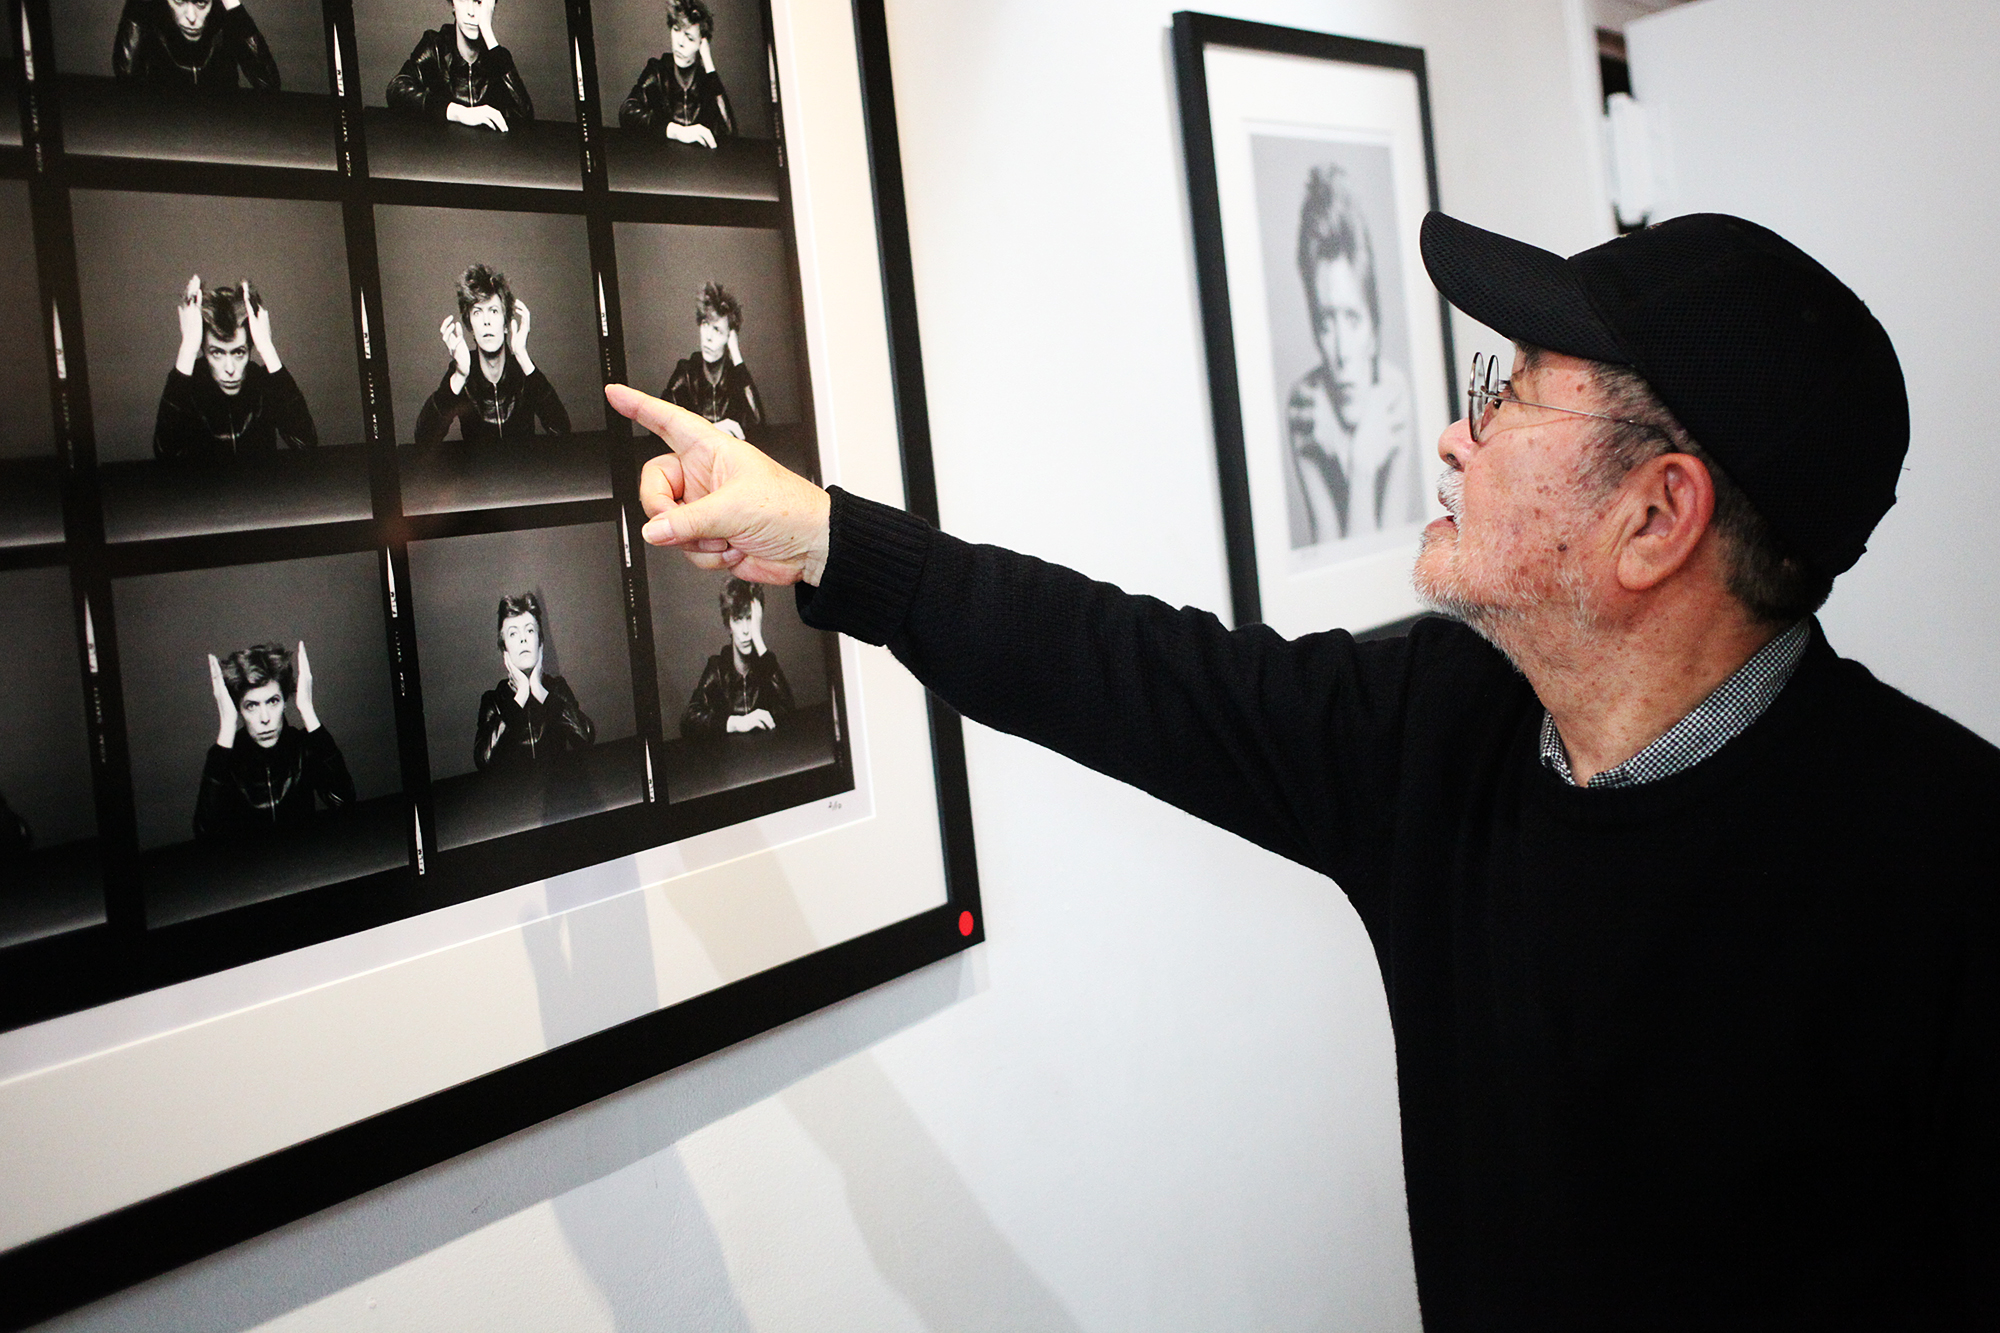 Masayoshi Sukita points out his favorite image from his shoot with David Bowie for the Heroes album cover at the Morrison Hotel Gallery in New York City on Nov. 13, 2015. Kenneth Bachor for TIME